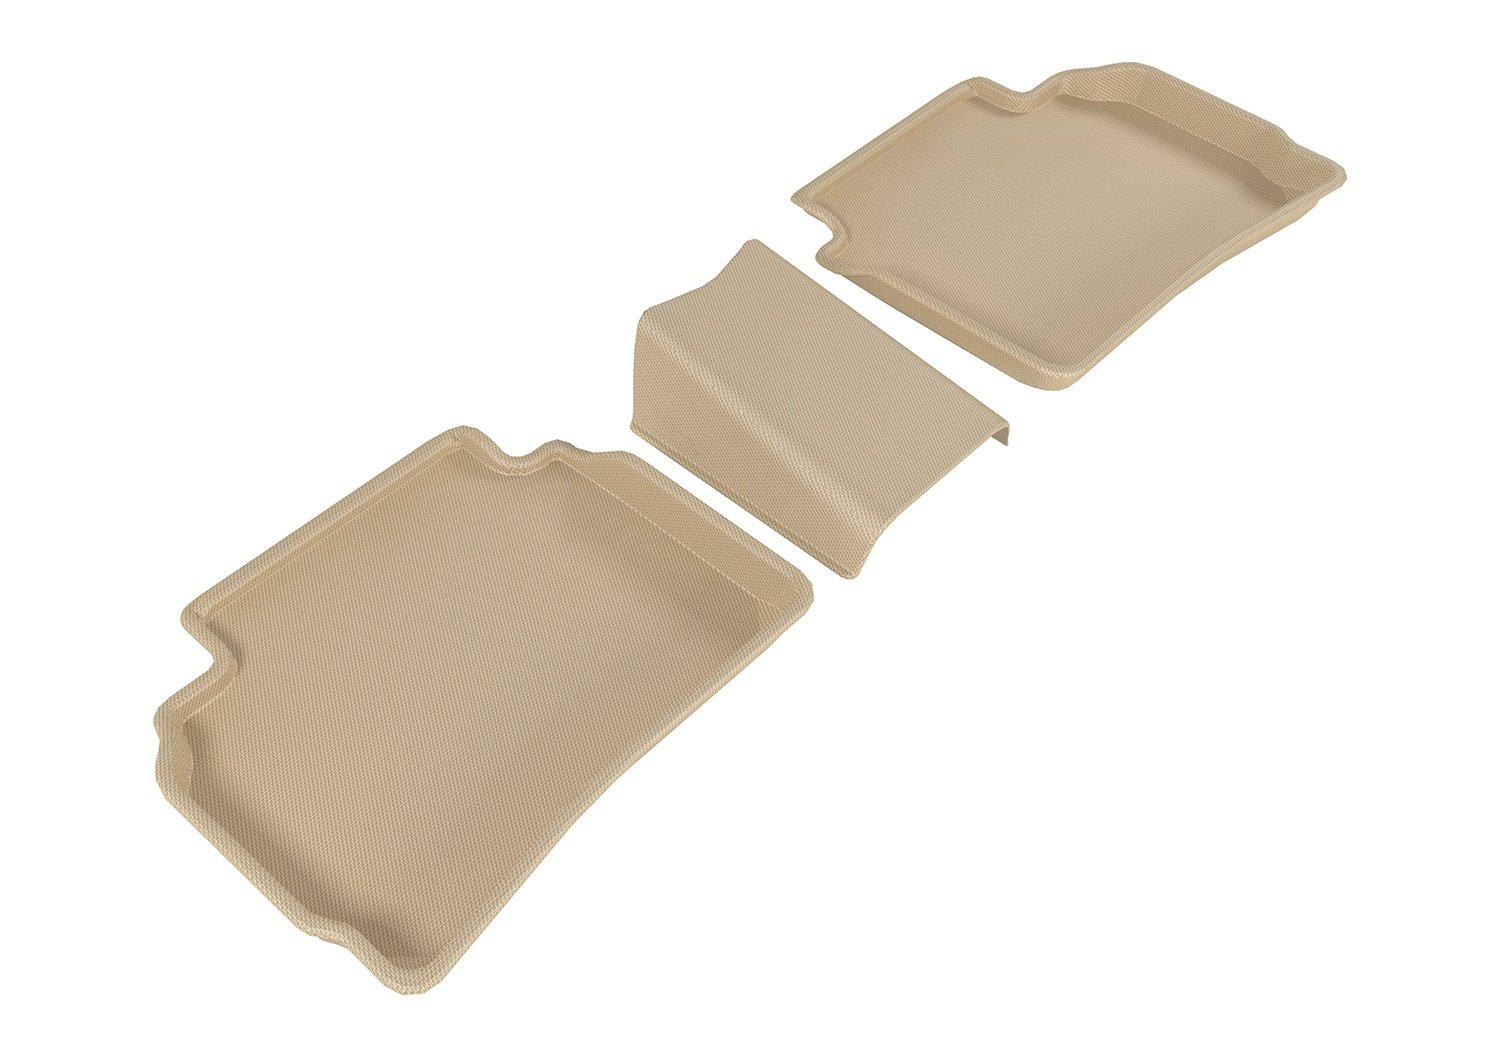 Tan Kagu Rubber 3D MAXpider Complete Set Custom Fit All-Weather Floor Mat for Select Chevrolet Malibu Models